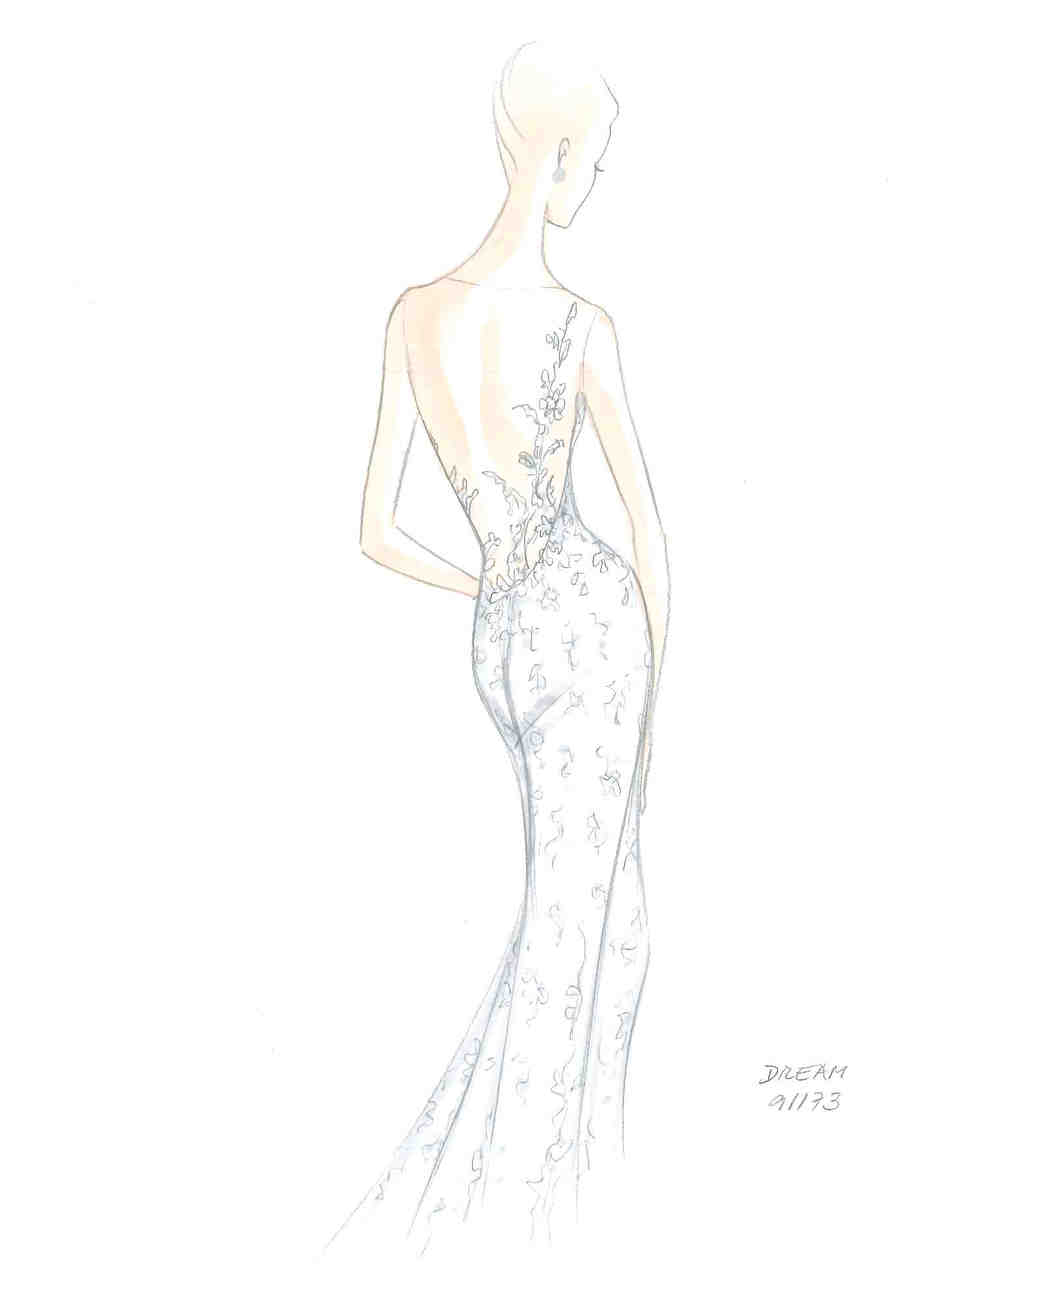 sofia-vergara-dress-sketches-rosa-clara-dream-0915.jpg